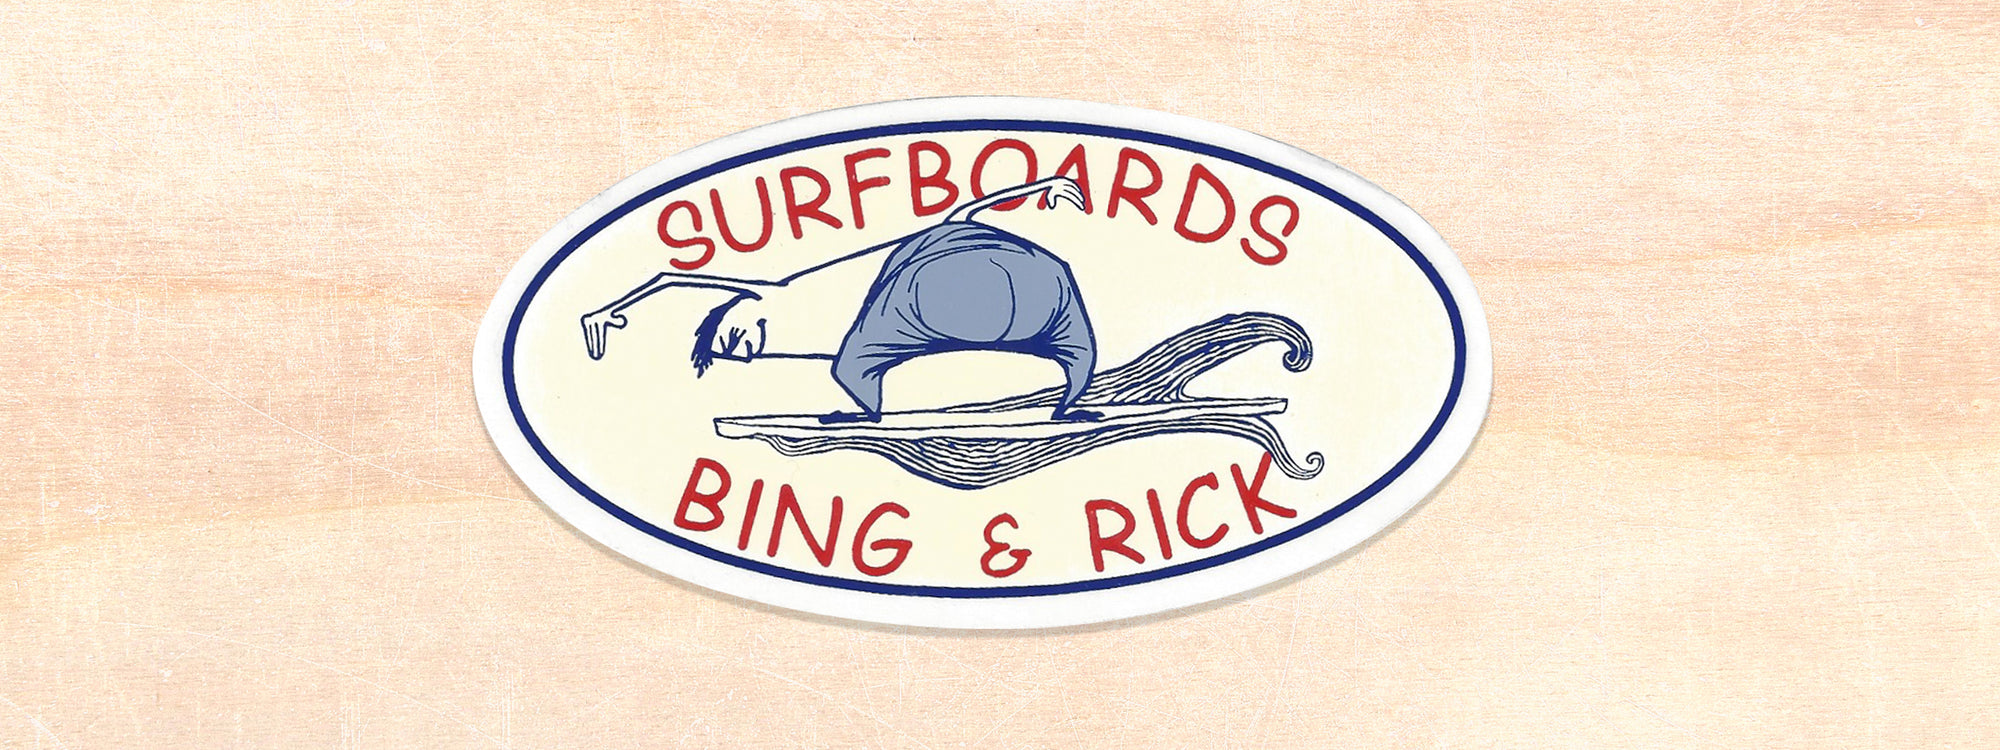 Bing and Rick Surfboards Logo Sticker